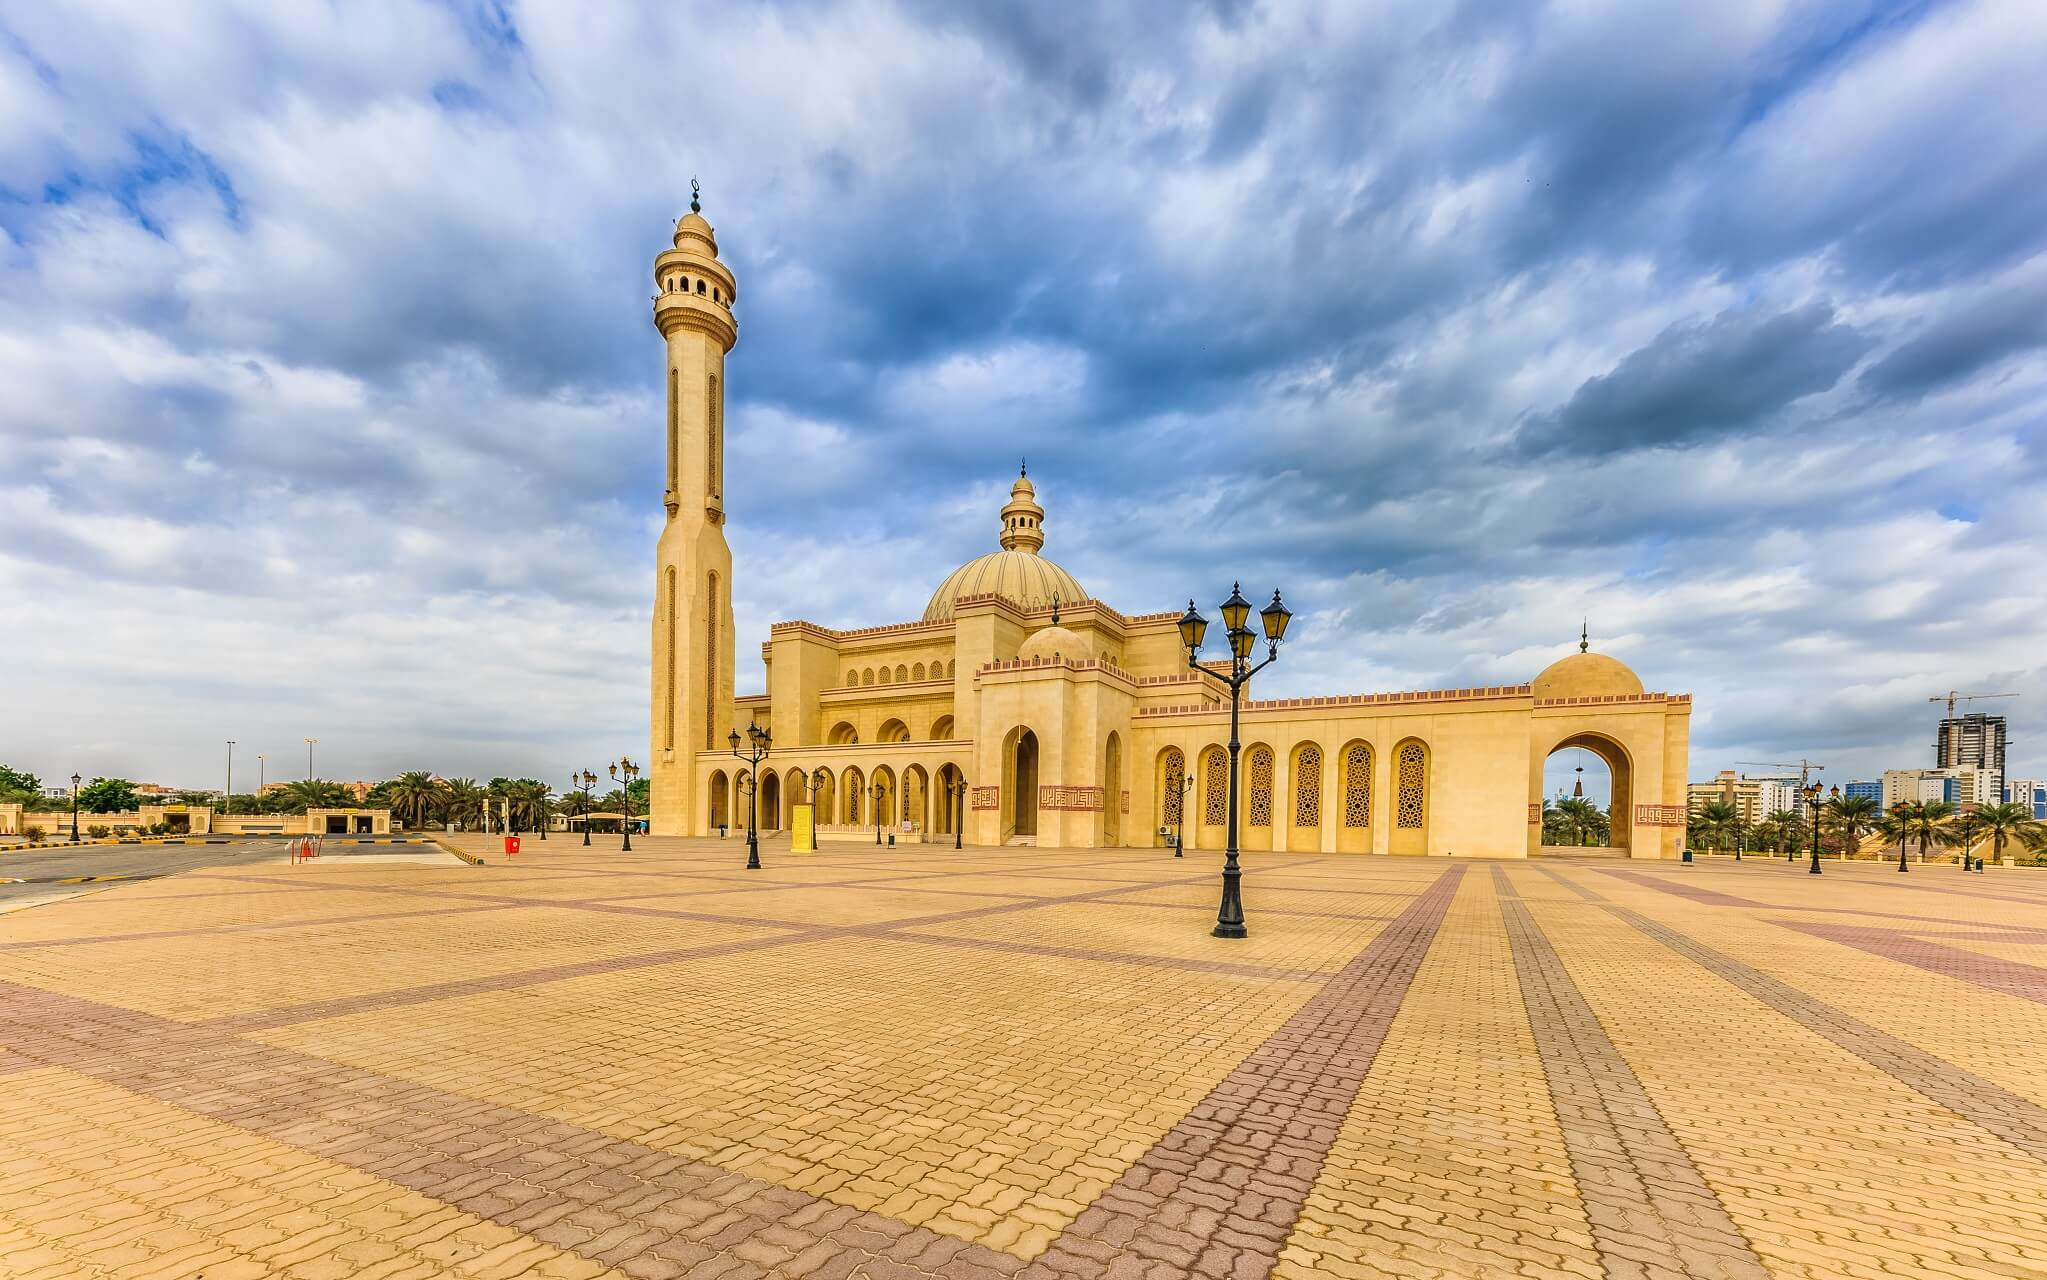 Das Ahmed Al Fateh Islamic Center mit der Al-Faith Mosque in Bahrain